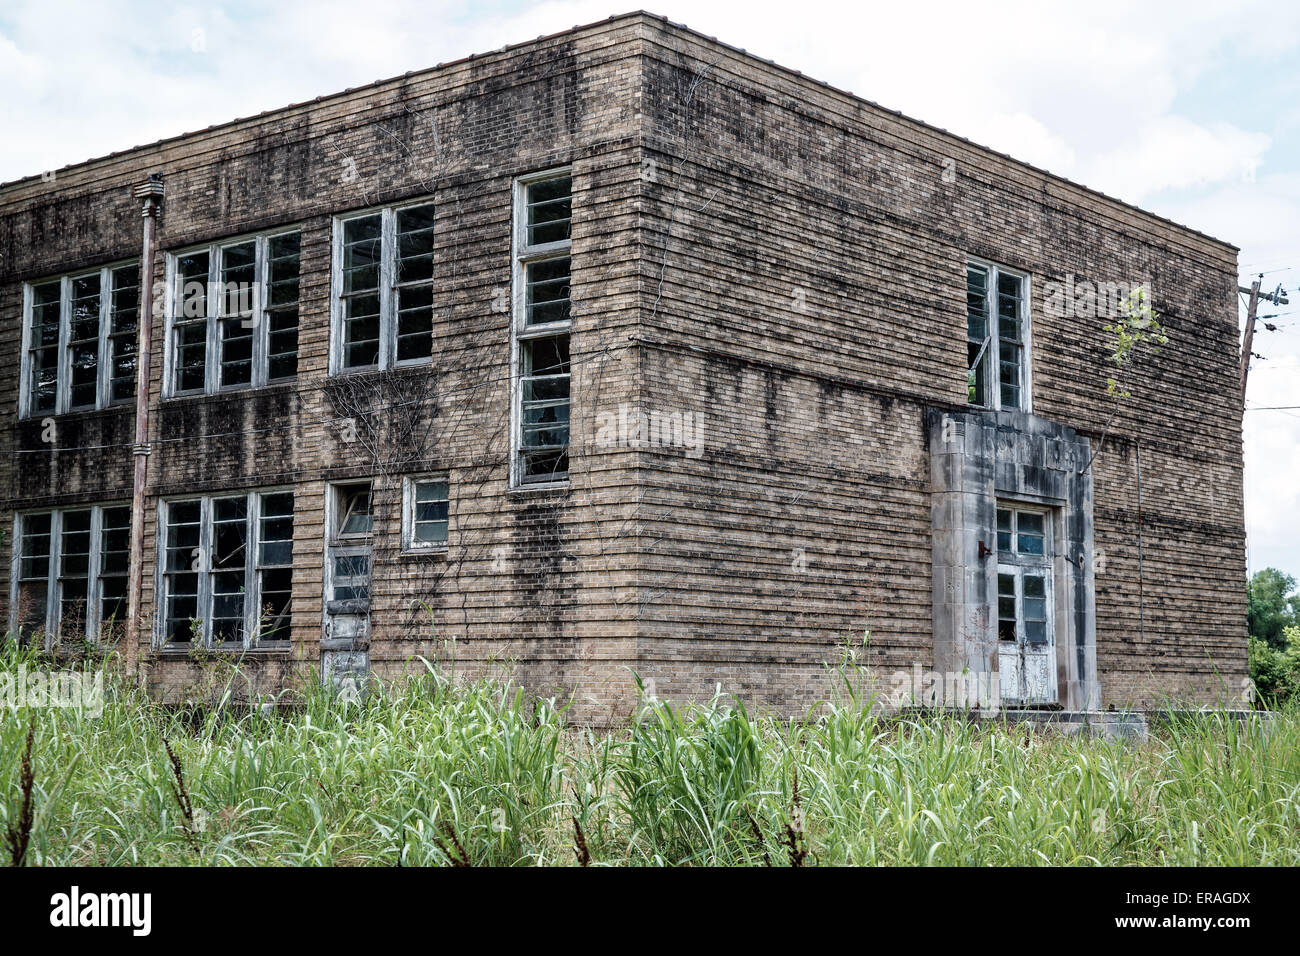 Abandoned junior high school in rural northern Lousiana.  Gray, dilapidated building surrounded by high weeds. - Stock Image